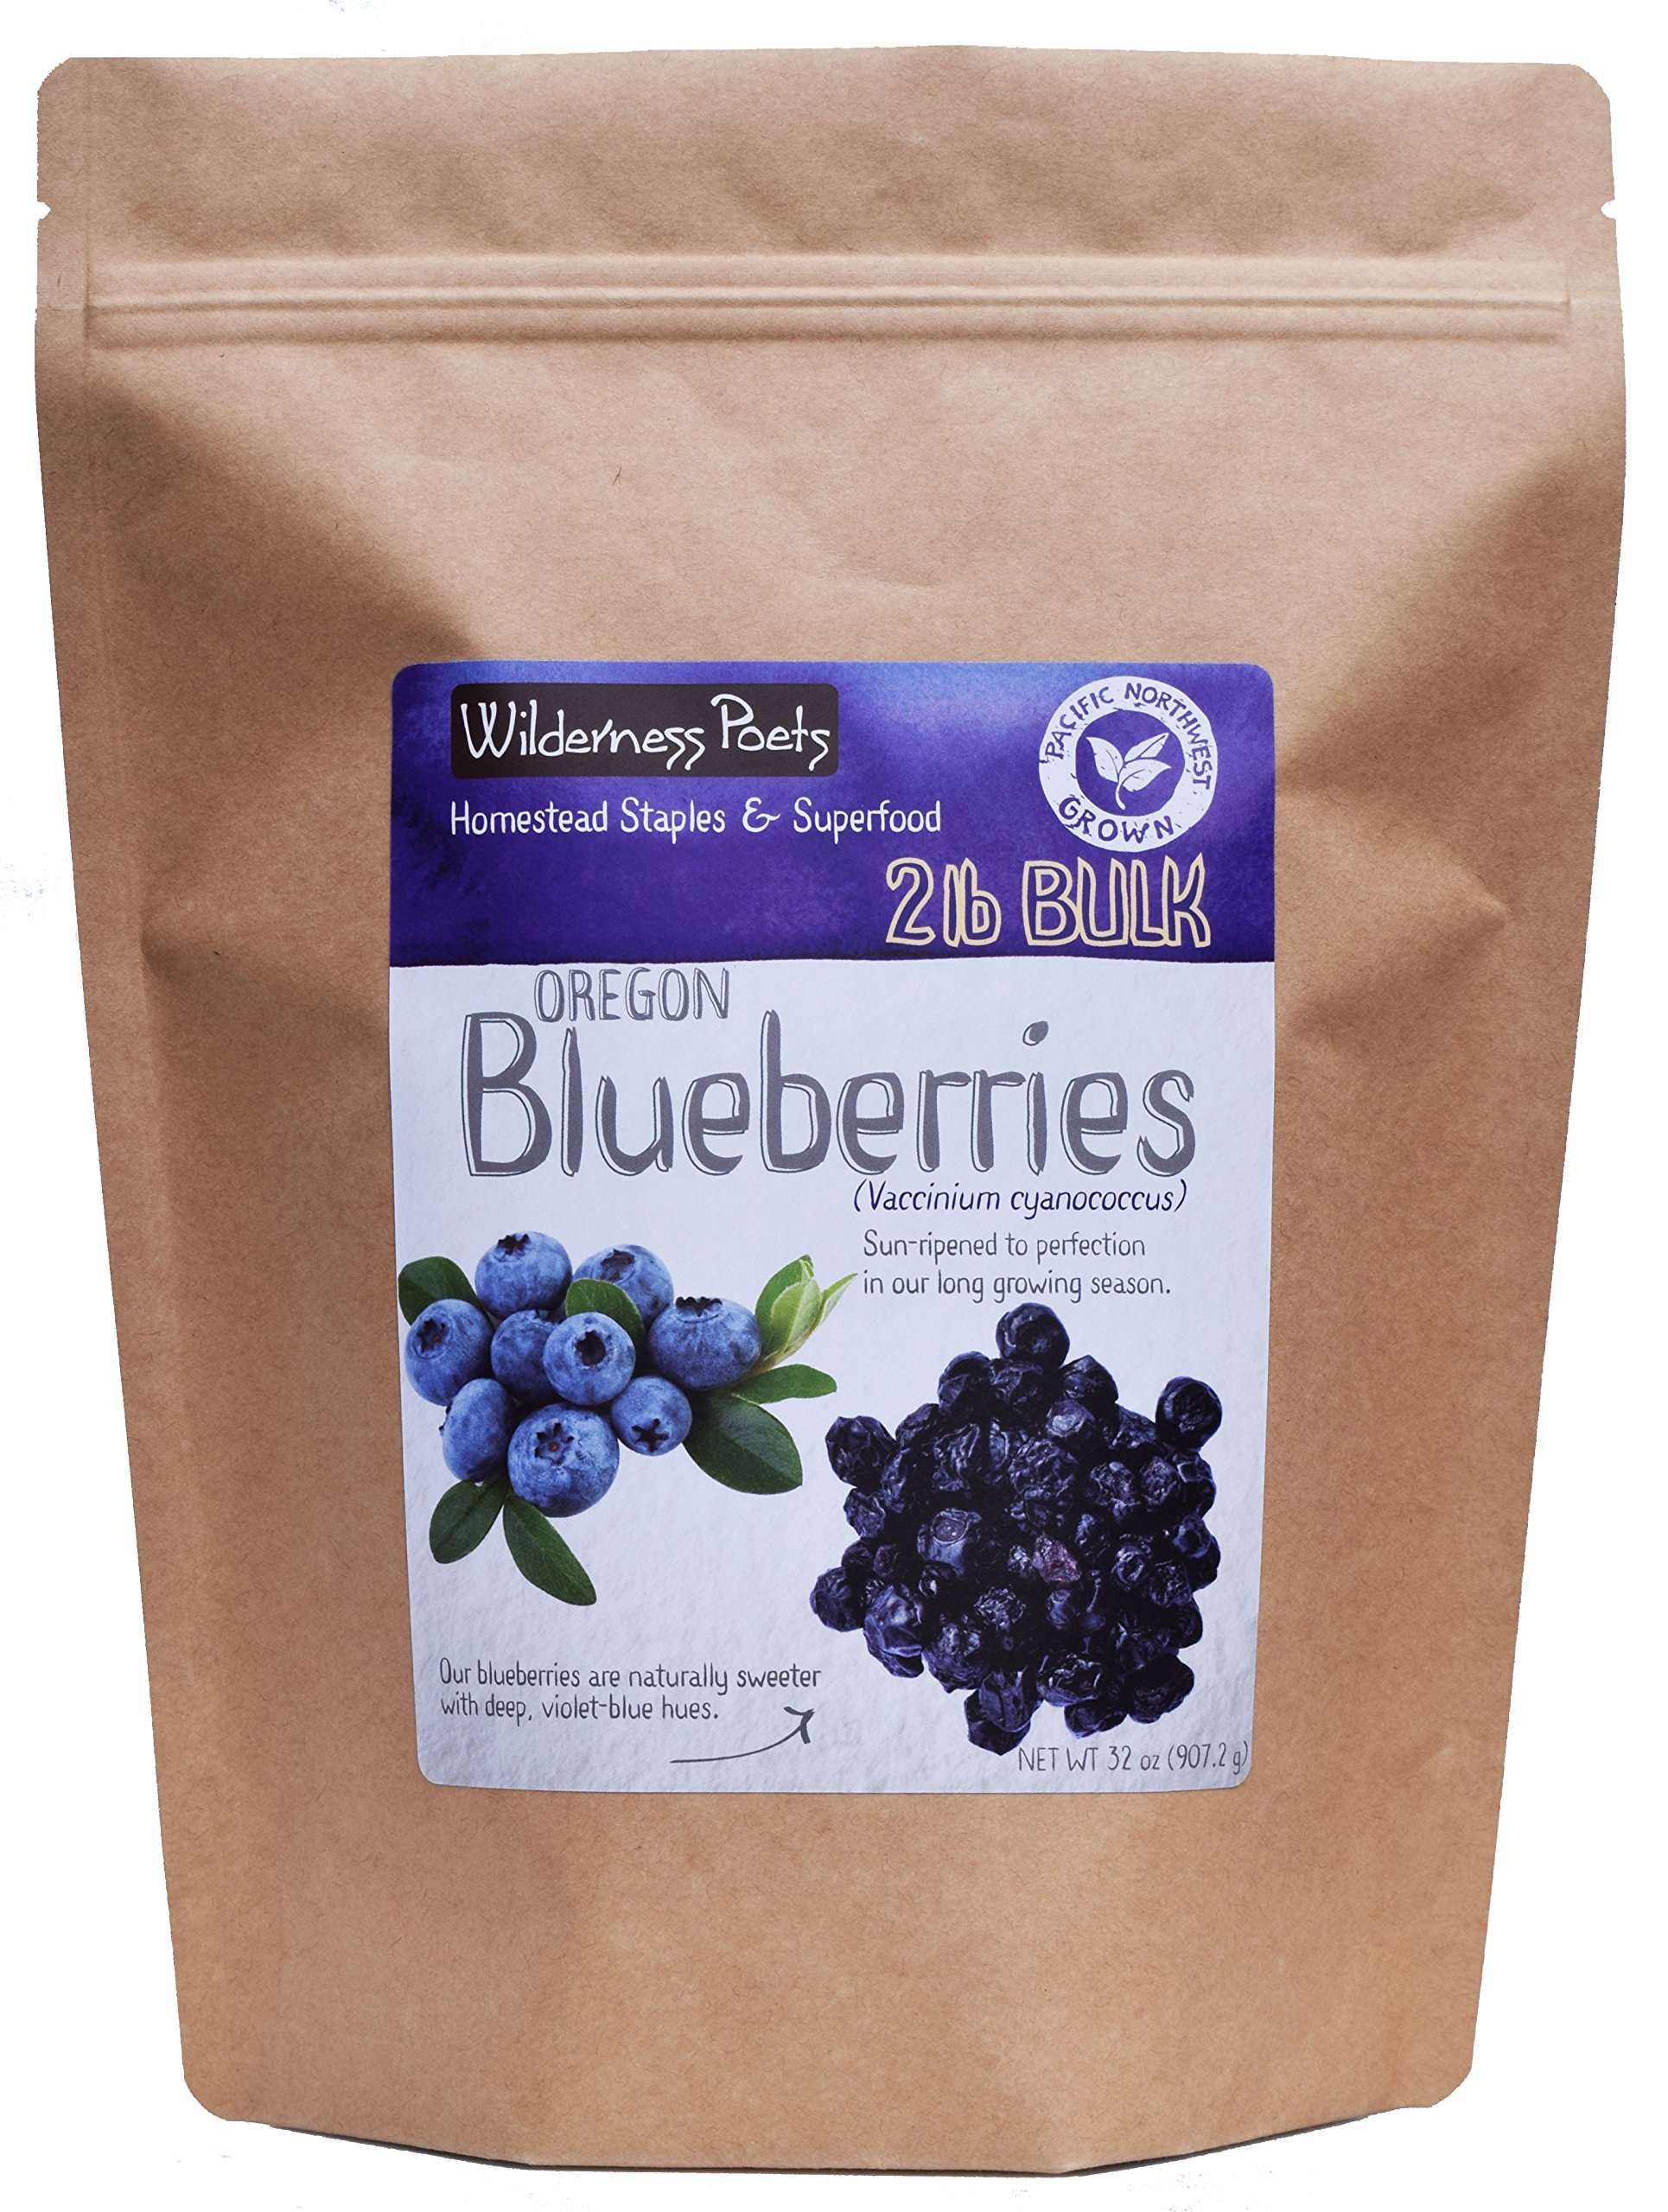 Wilderness Poets Oregon Blueberries (Sweetened with Apples) - Whole, Dried, Fruit - 2 Pound (32 Ounce)